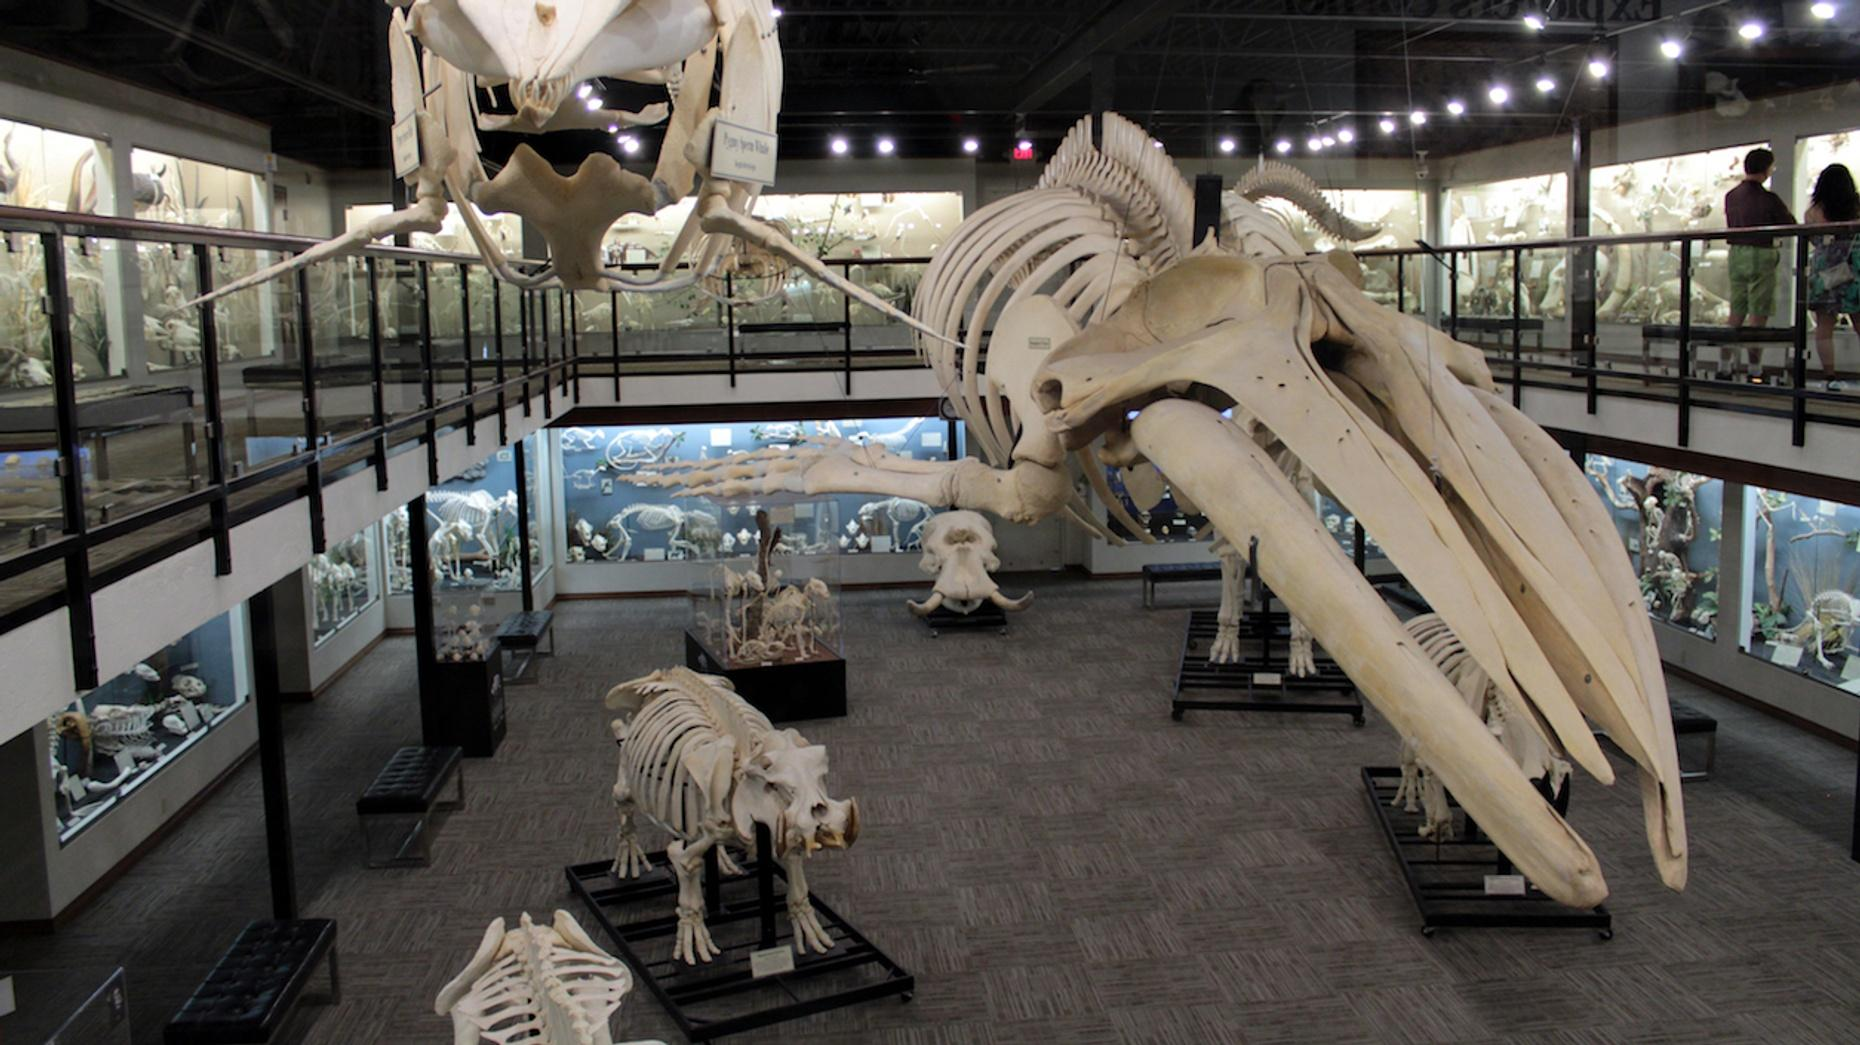 Museum of Osteology General Admission in Oklahoma City